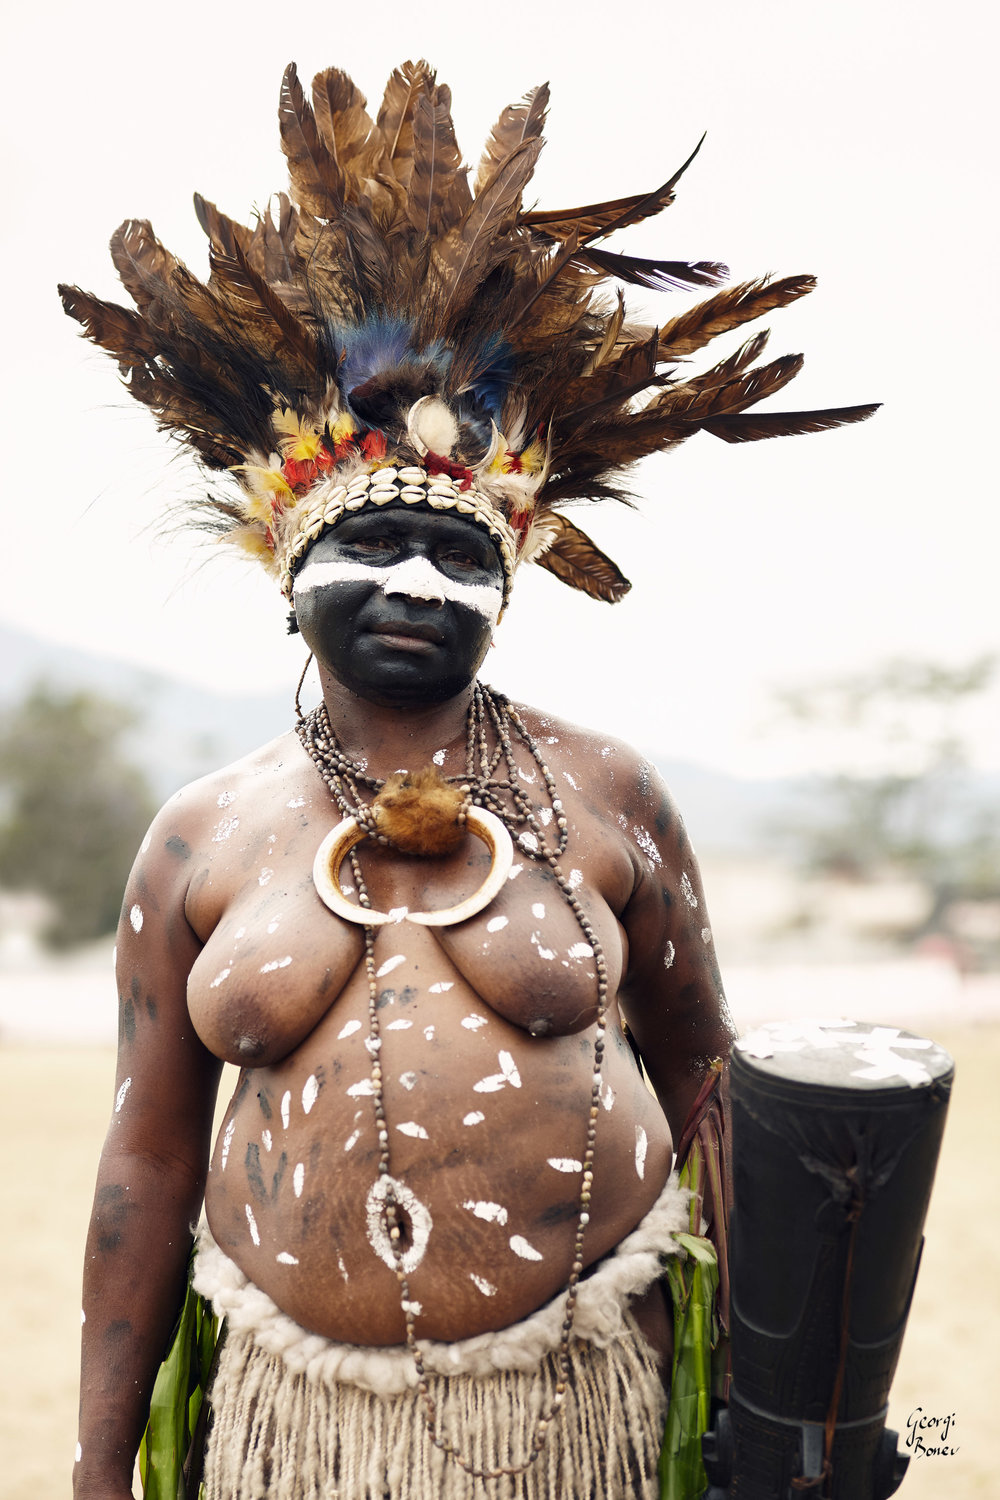 GILABAN WOMAN IN PAPUA NEW GUINEA